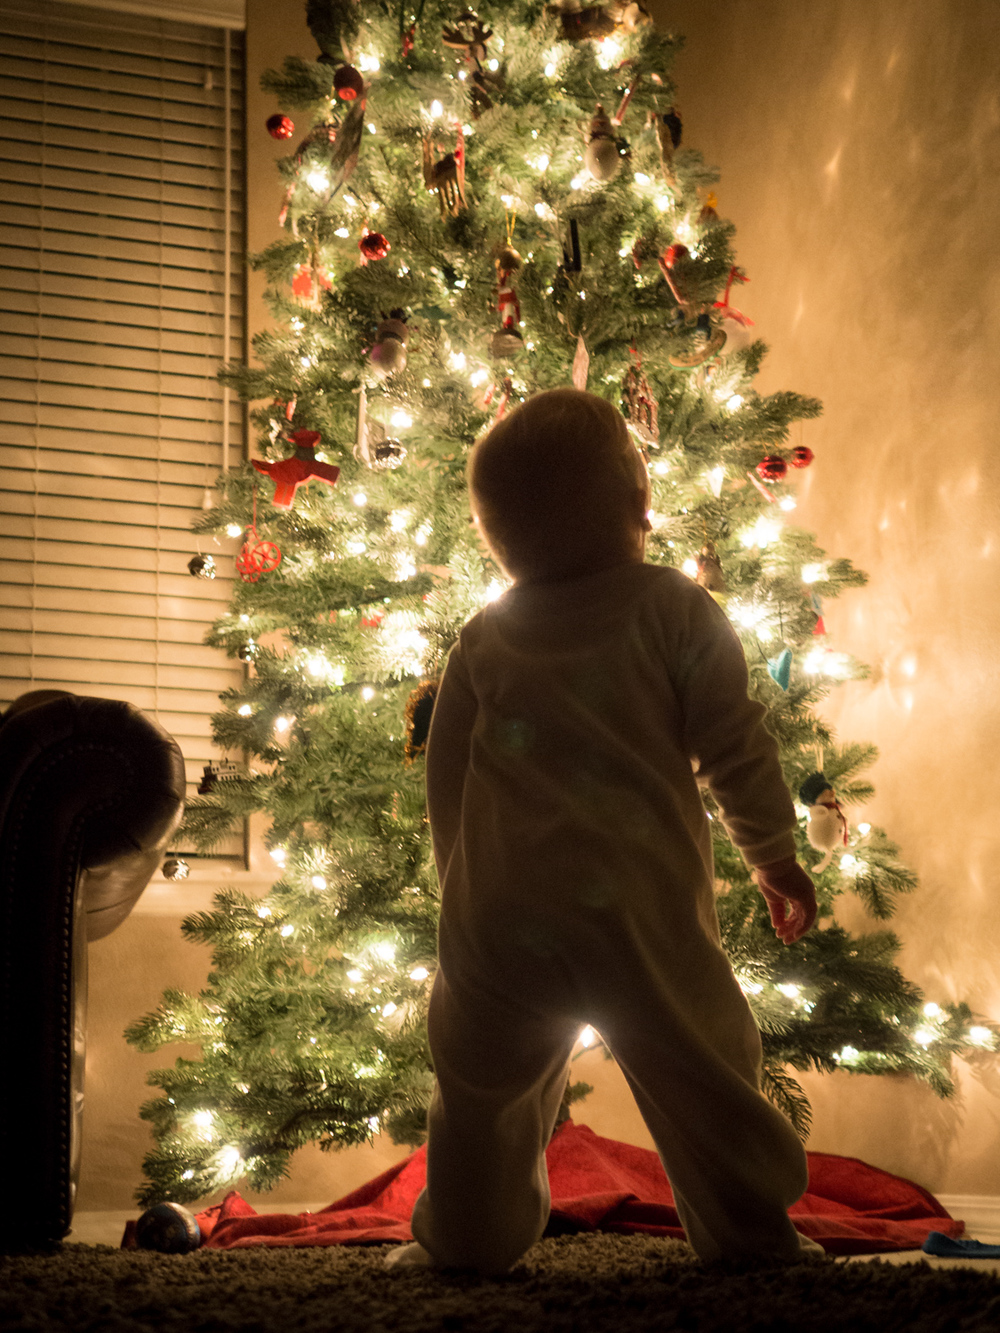 Our little daughter taking in the Christmas tree - photo by Traci Vogt